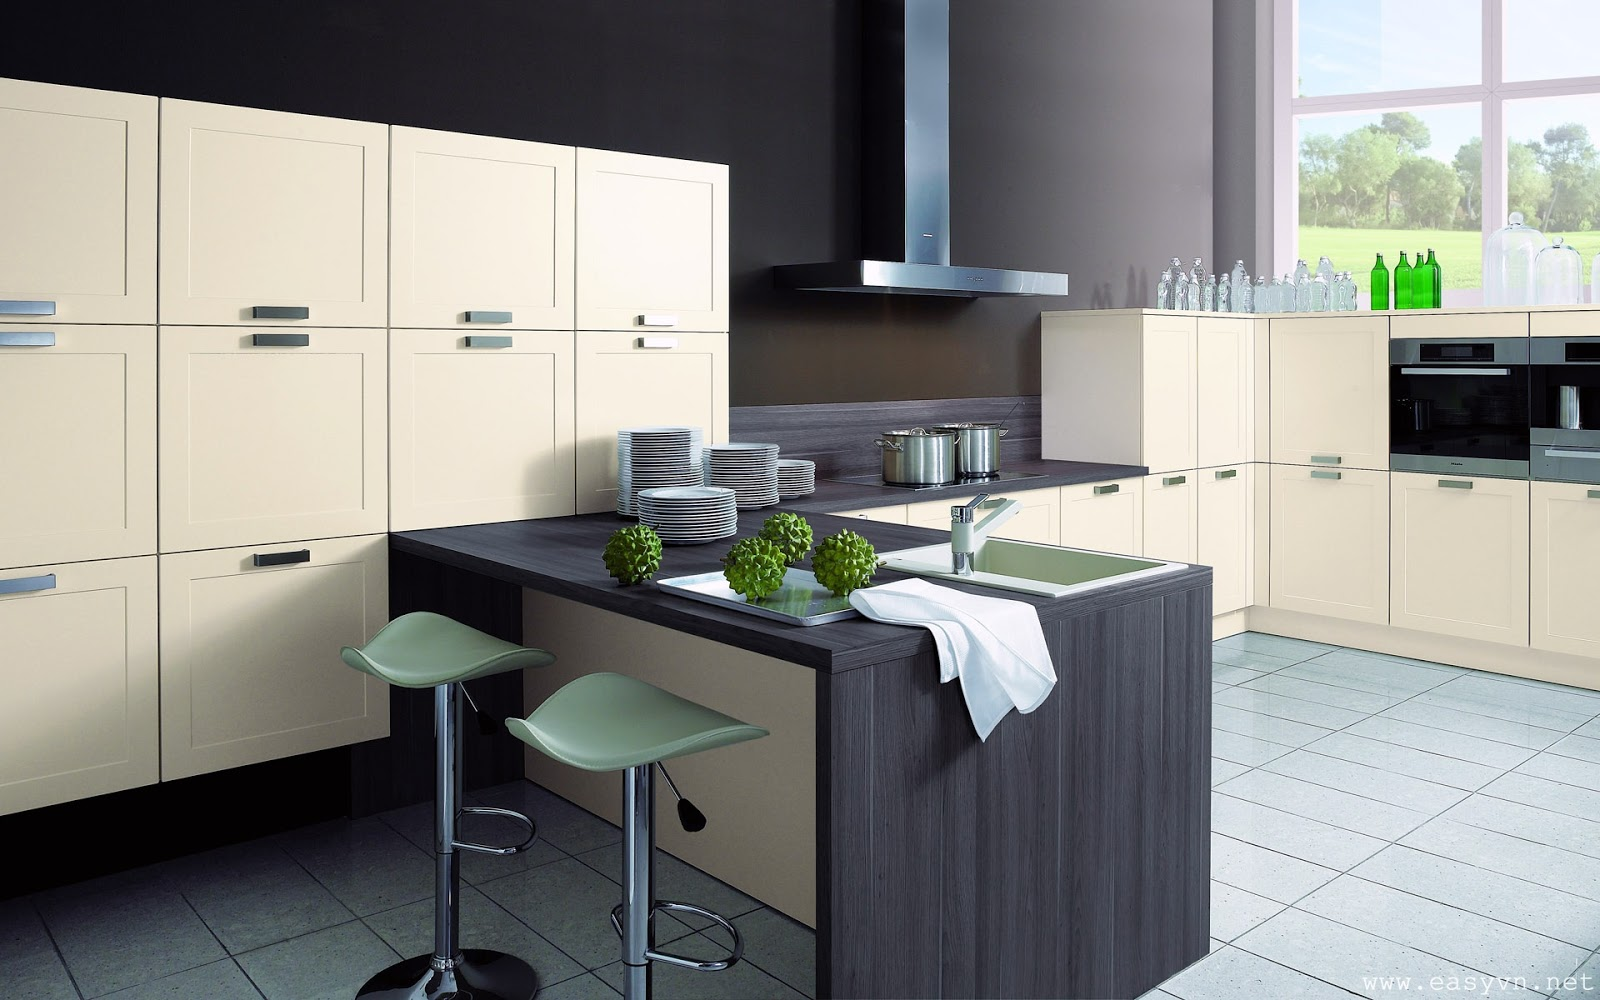 Download Free Beautiful Kitchens Wallpapers | Most ...